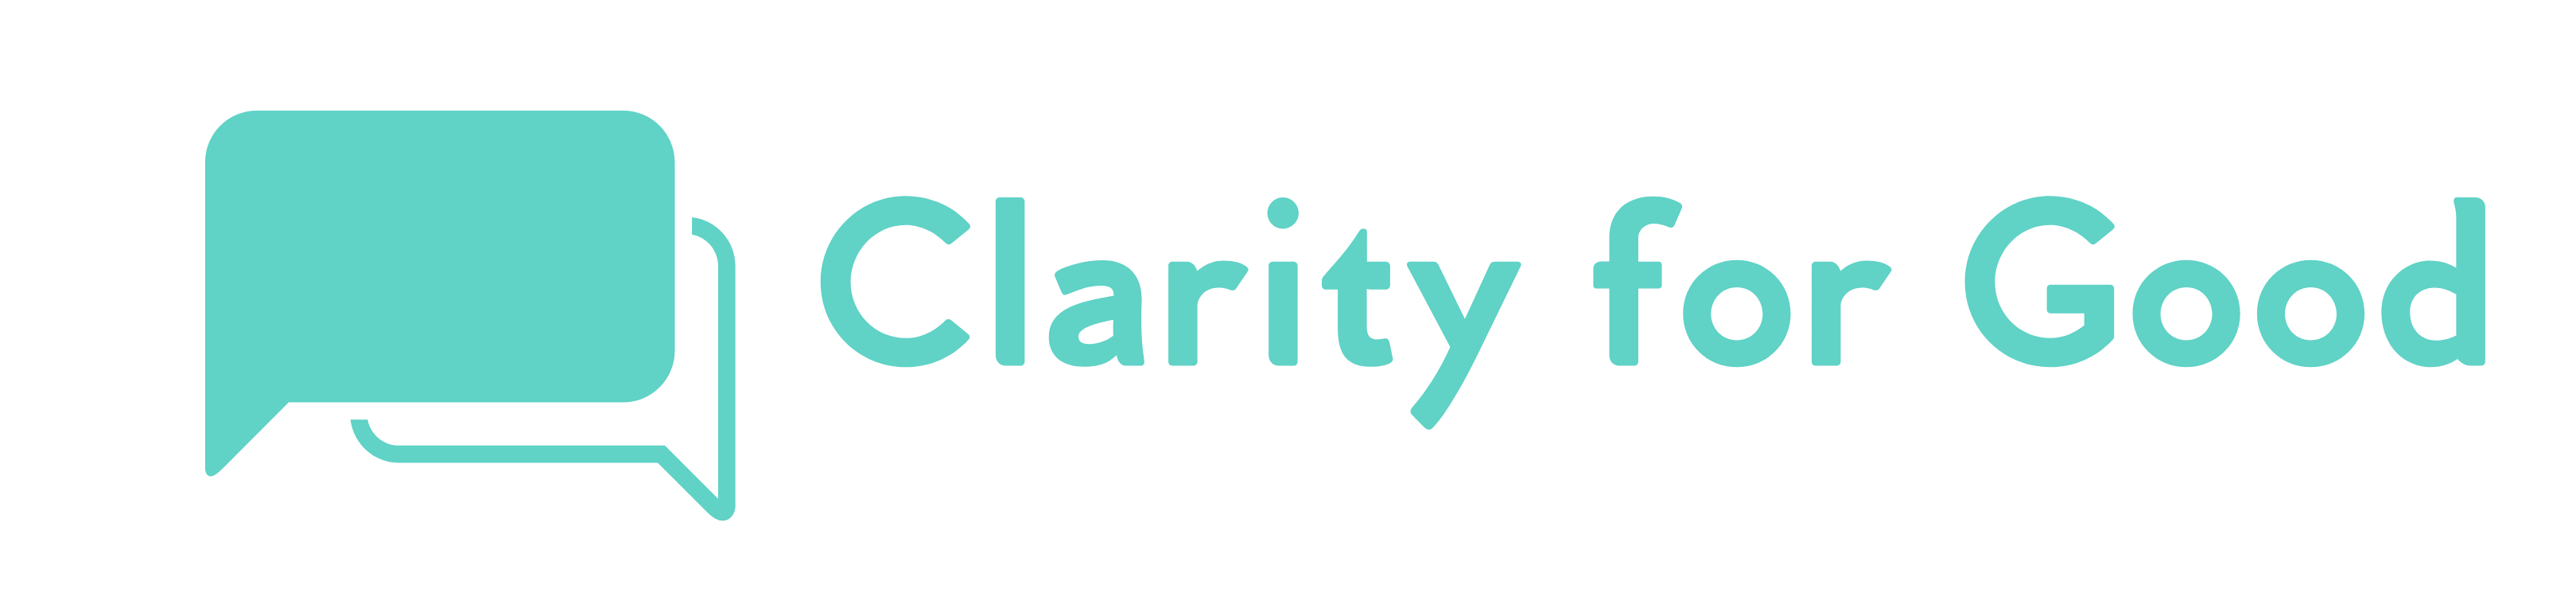 Clarity for Good